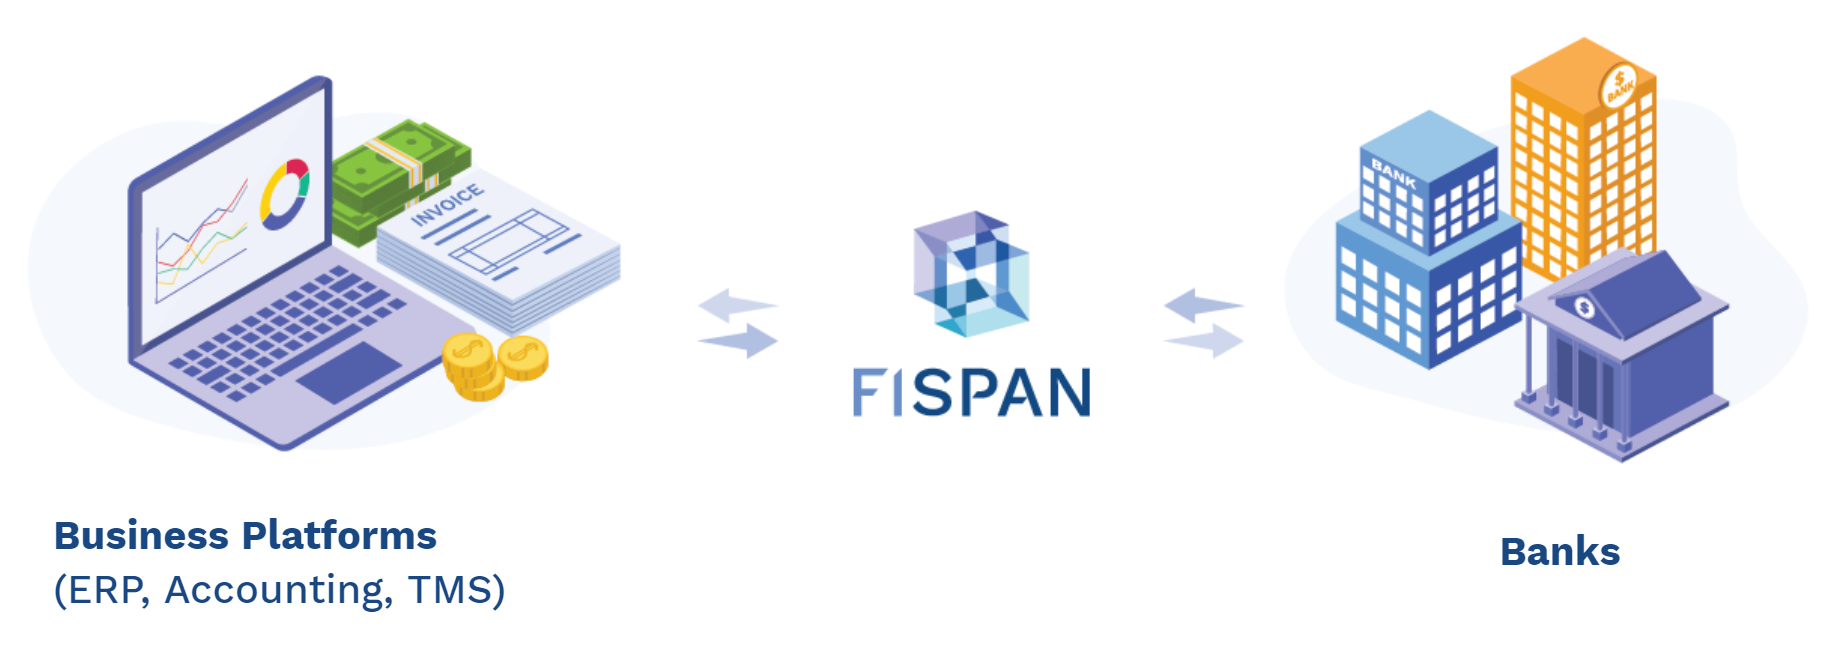 FISPAN connects banking capabilities directly into a customer's ERP or accounting platform.